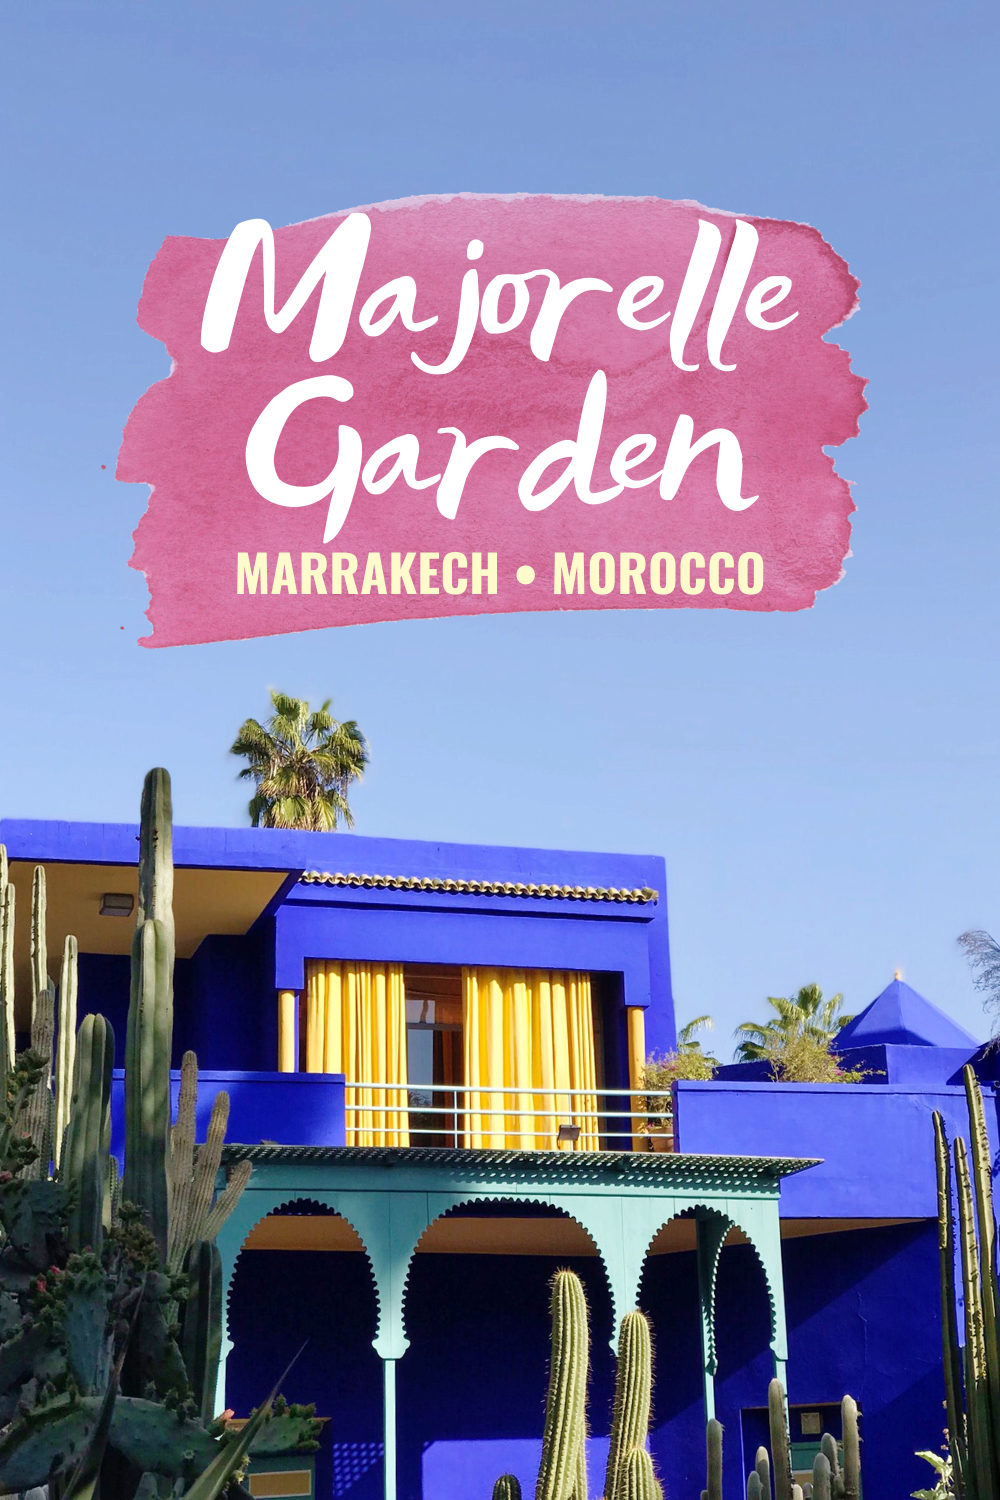 Morocco Travel Photo Diary: Majorelle Garden - Looking for a visual escape to Morocco? I'm sharing all the details on the Majorelle Garden in Marrakech! |Majorelle Garden - Garden In Morocco - YSL Garden Marrakech - Majorelle Gardens Yves Saint Laurent - Morocco Travel